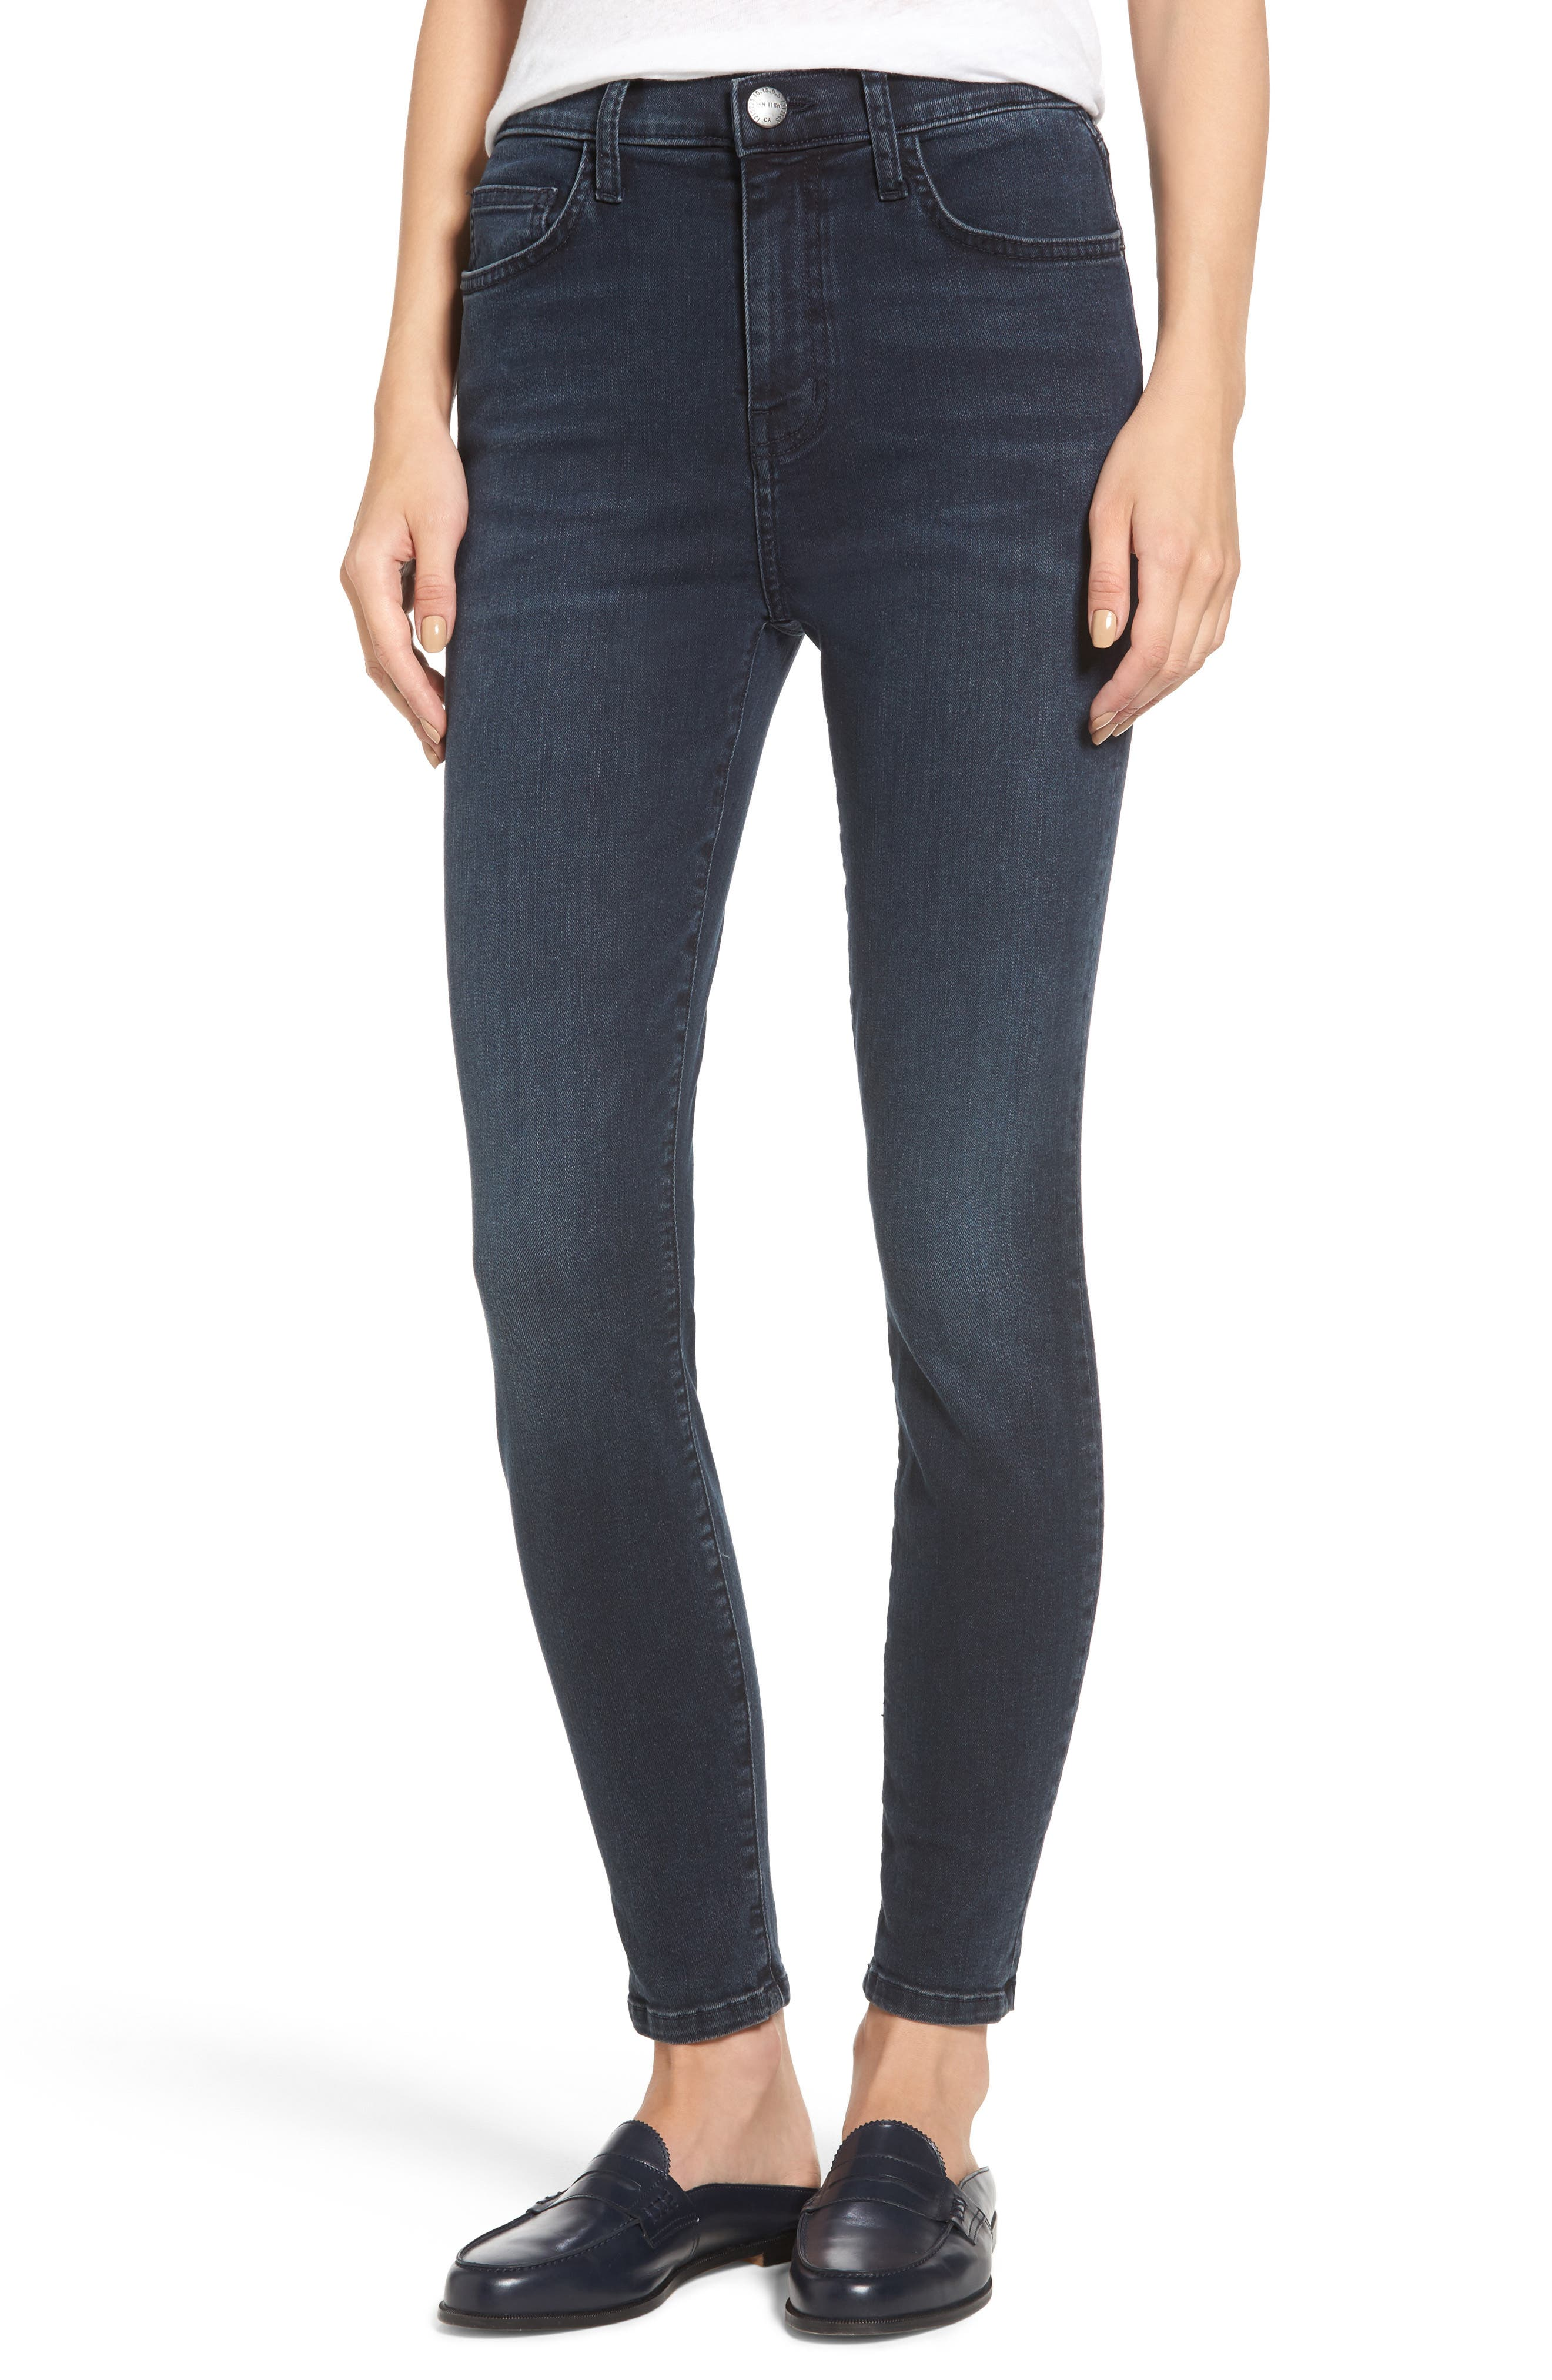 The Super High Waist Stiletto Ankle Skinny Jeans,                             Main thumbnail 1, color,                             467